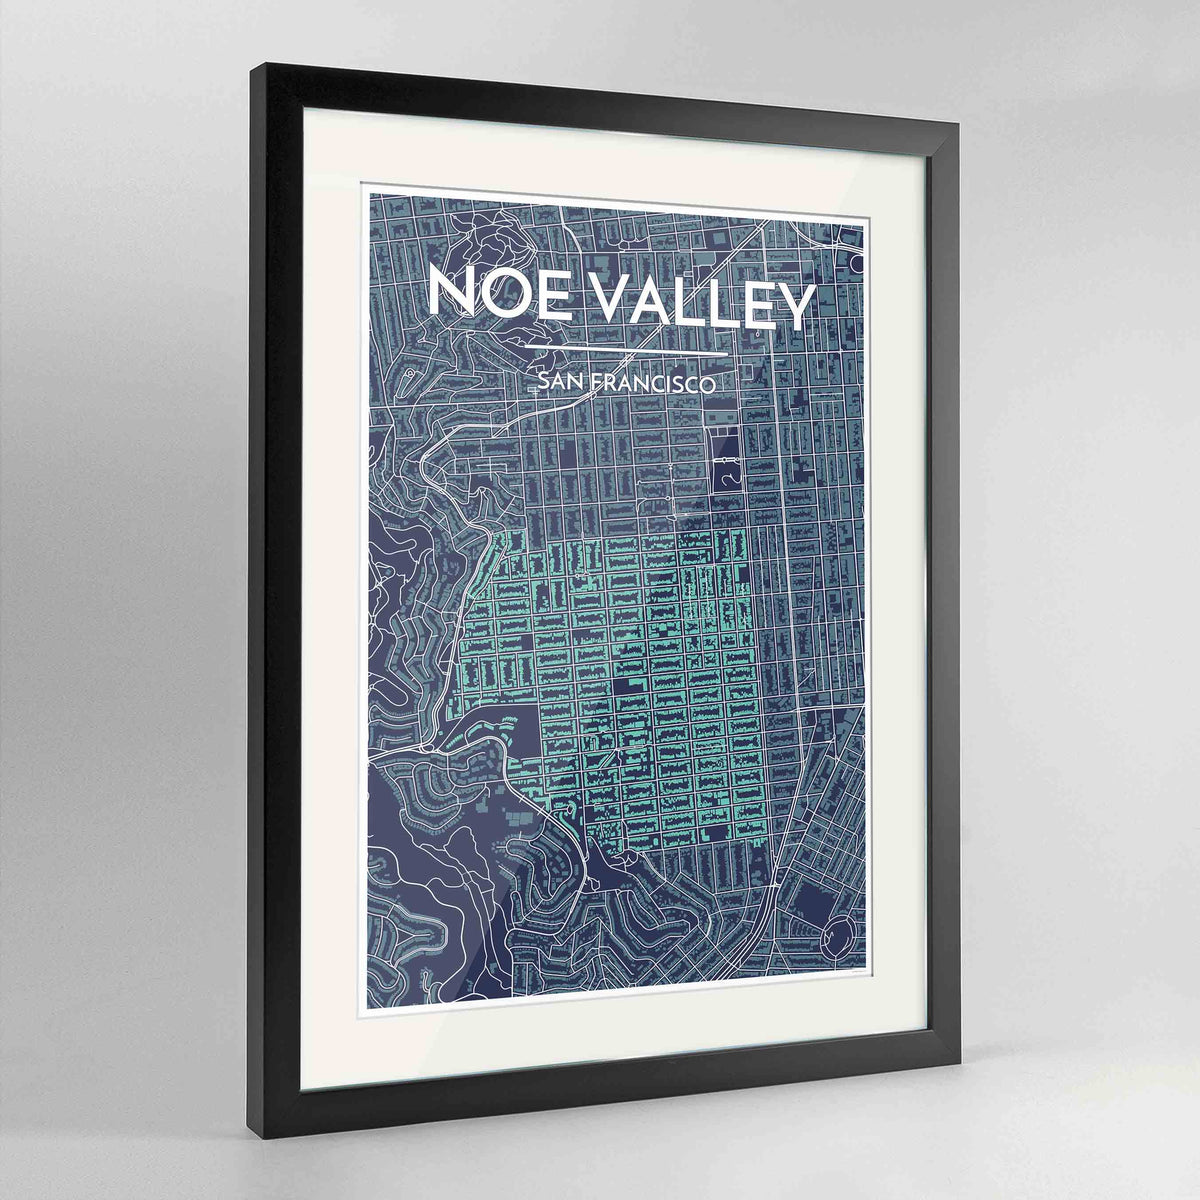 "Framed Noe Valley, San Francisco Map Art 24x36"" Contemporary Black frame Point Two Design Group"